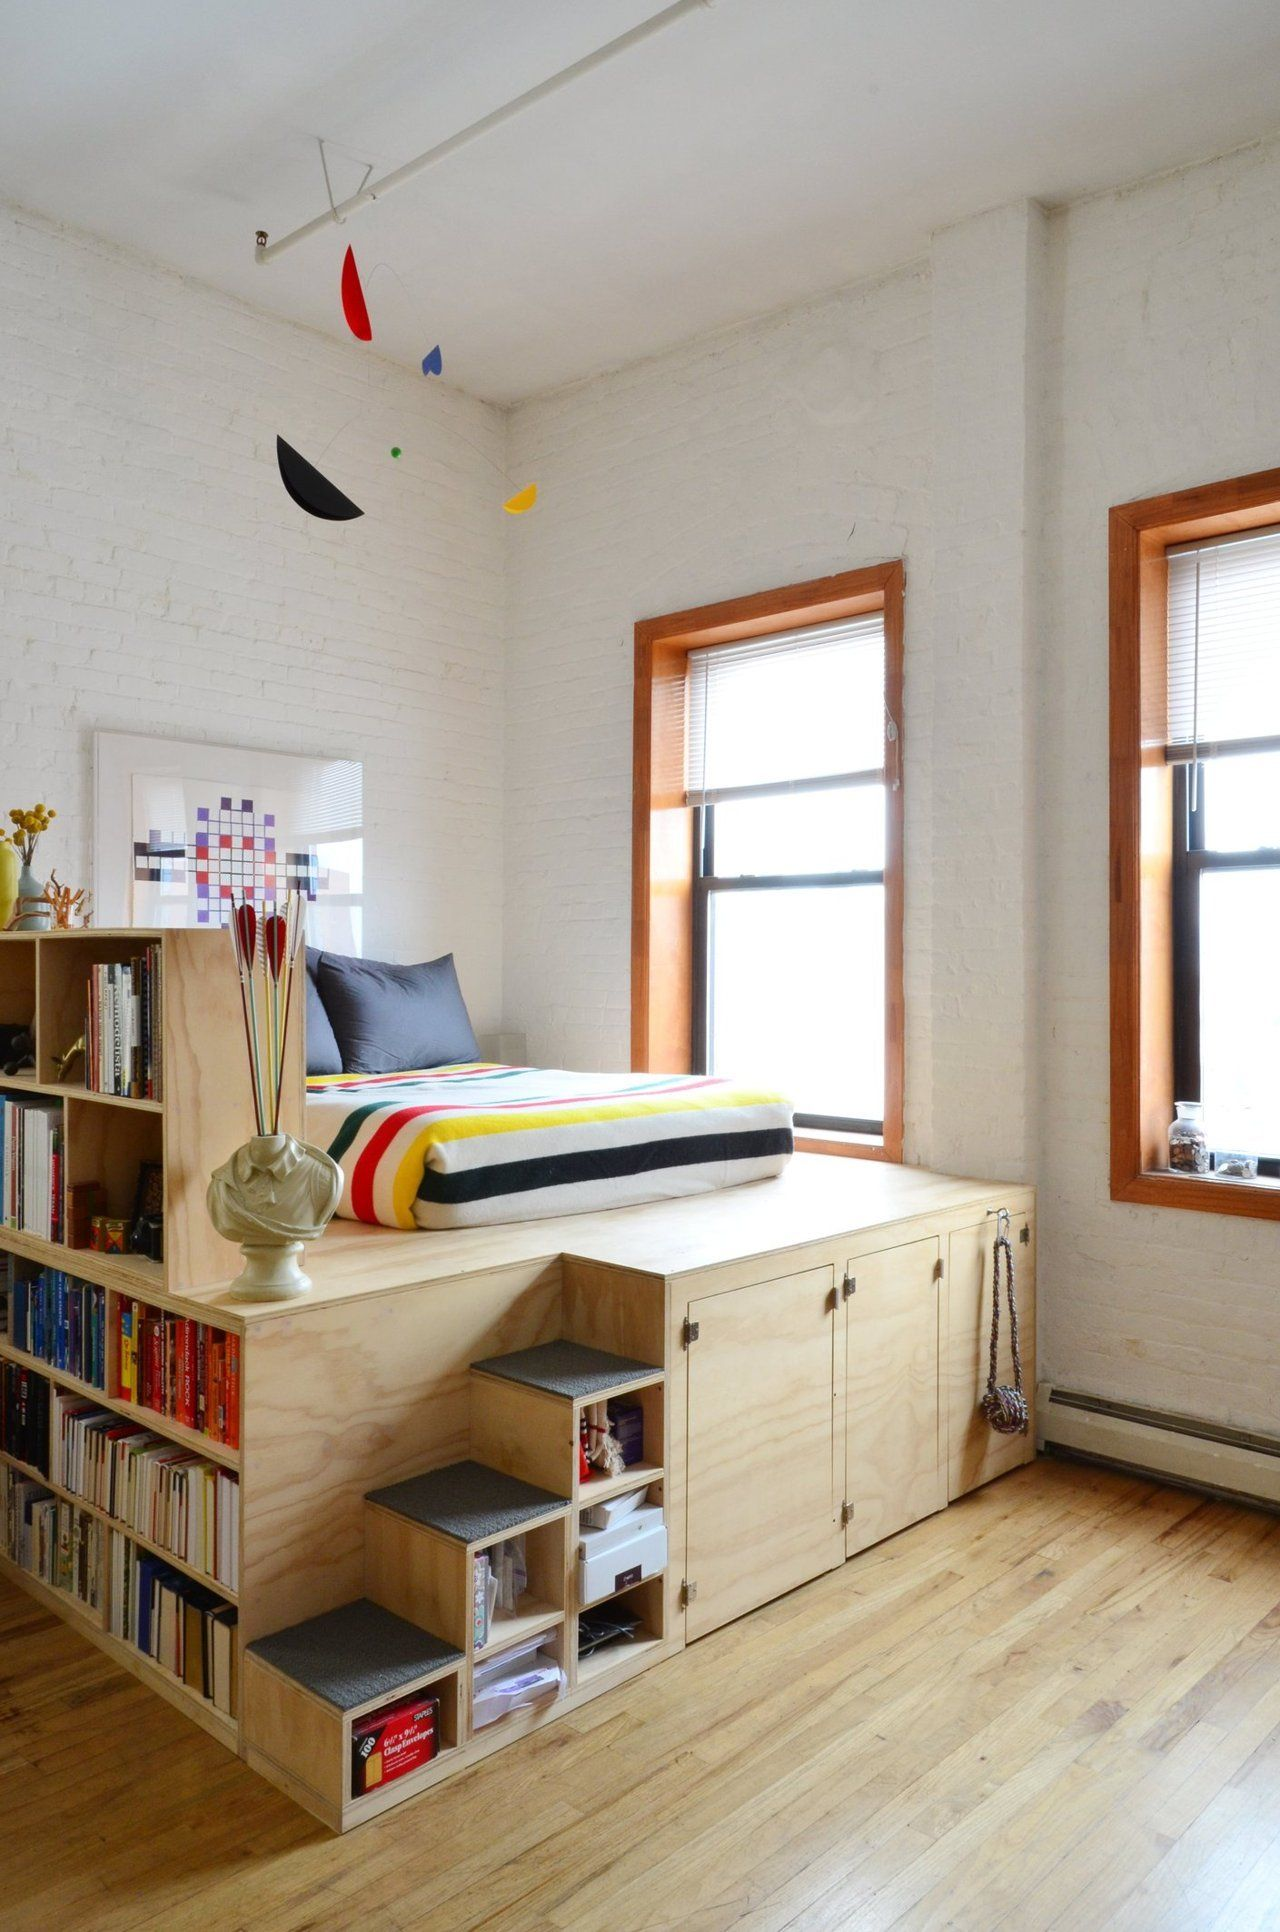 A Clever Urban Industrial Brooklyn Loft Bed Design Small